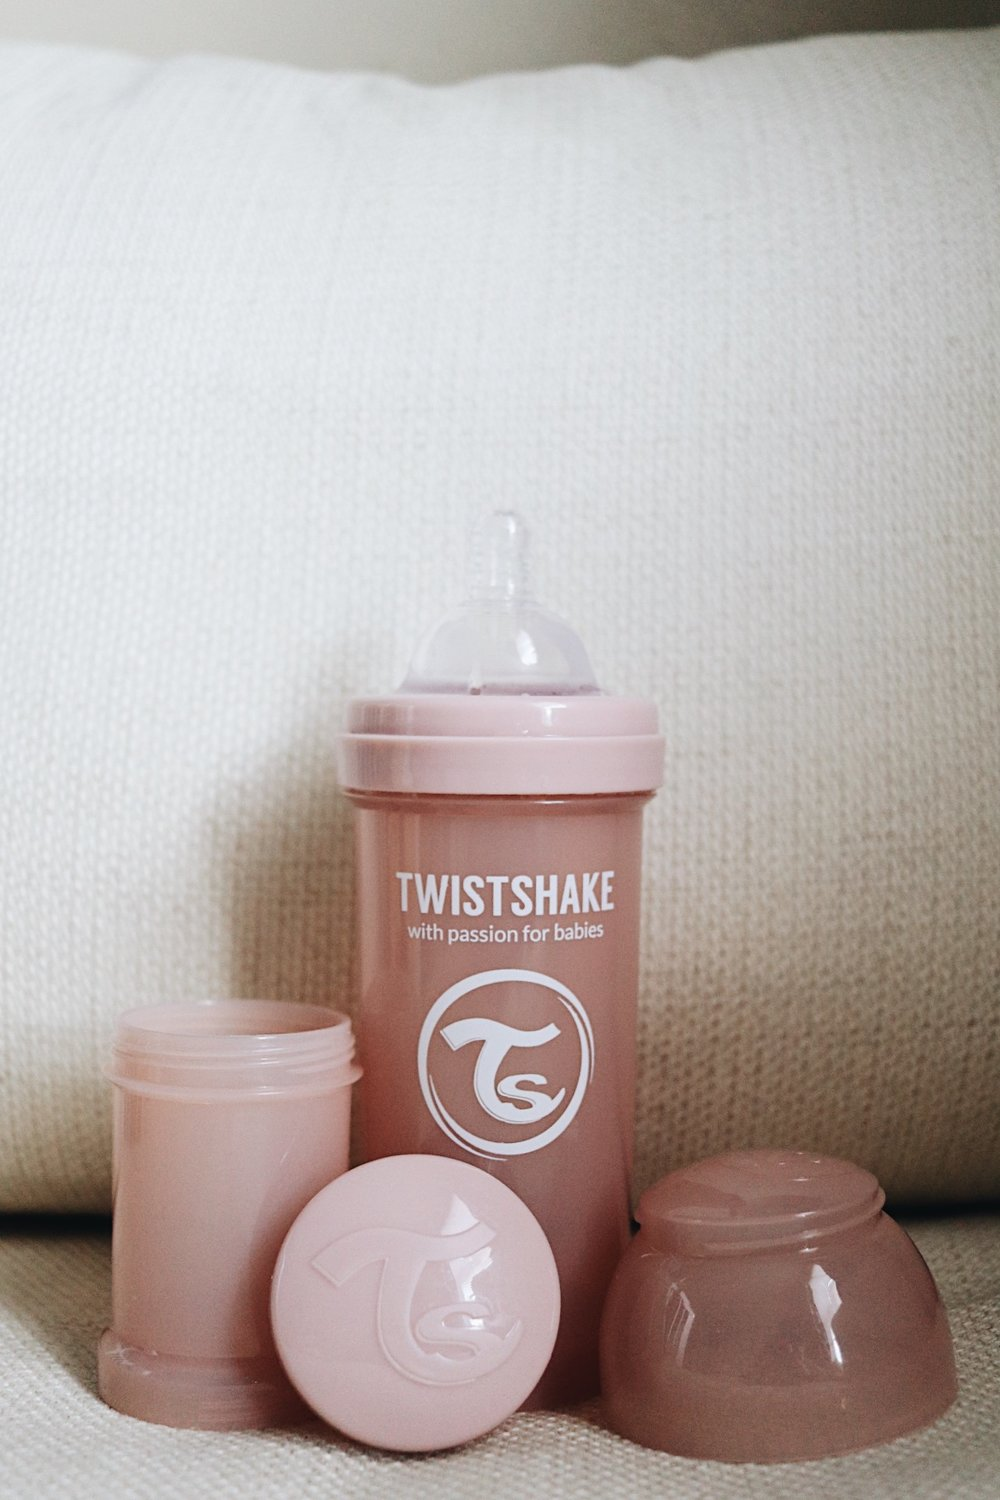 TwistShake was so kind and gave me a coupon code you can use toward your purchase! Free Shipping over $25 within the US!